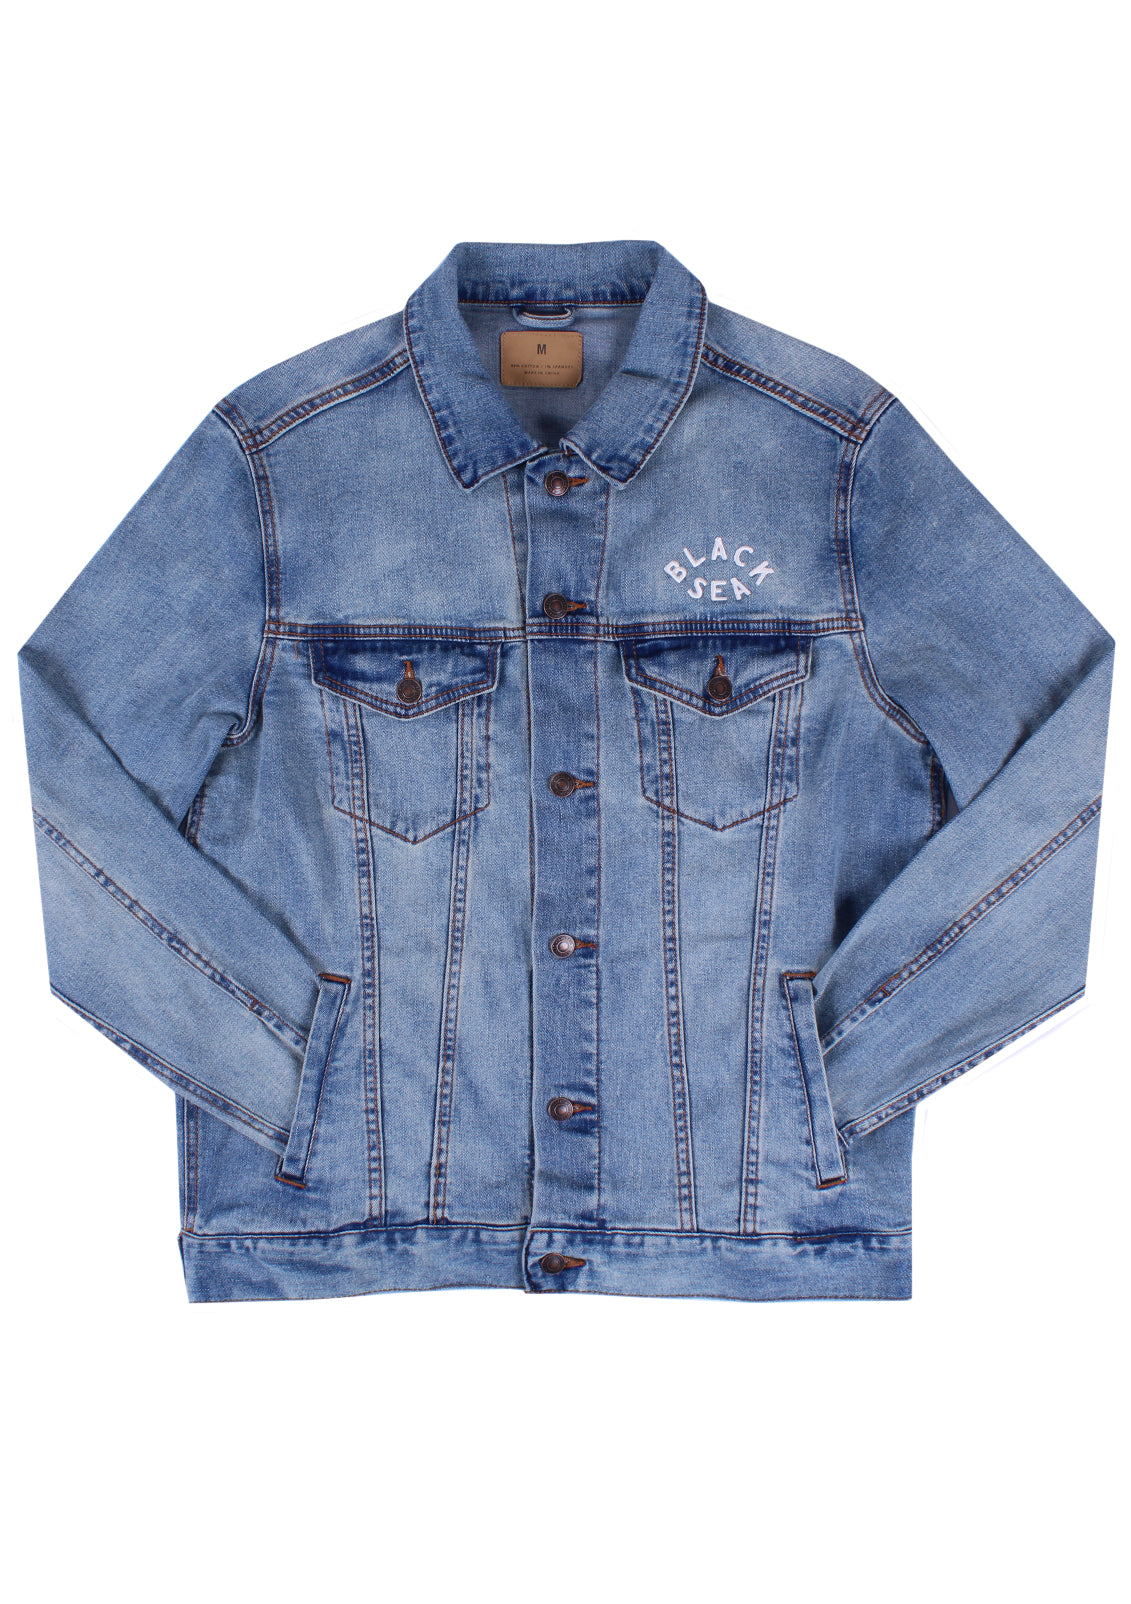 Black Sea Denim Jacket